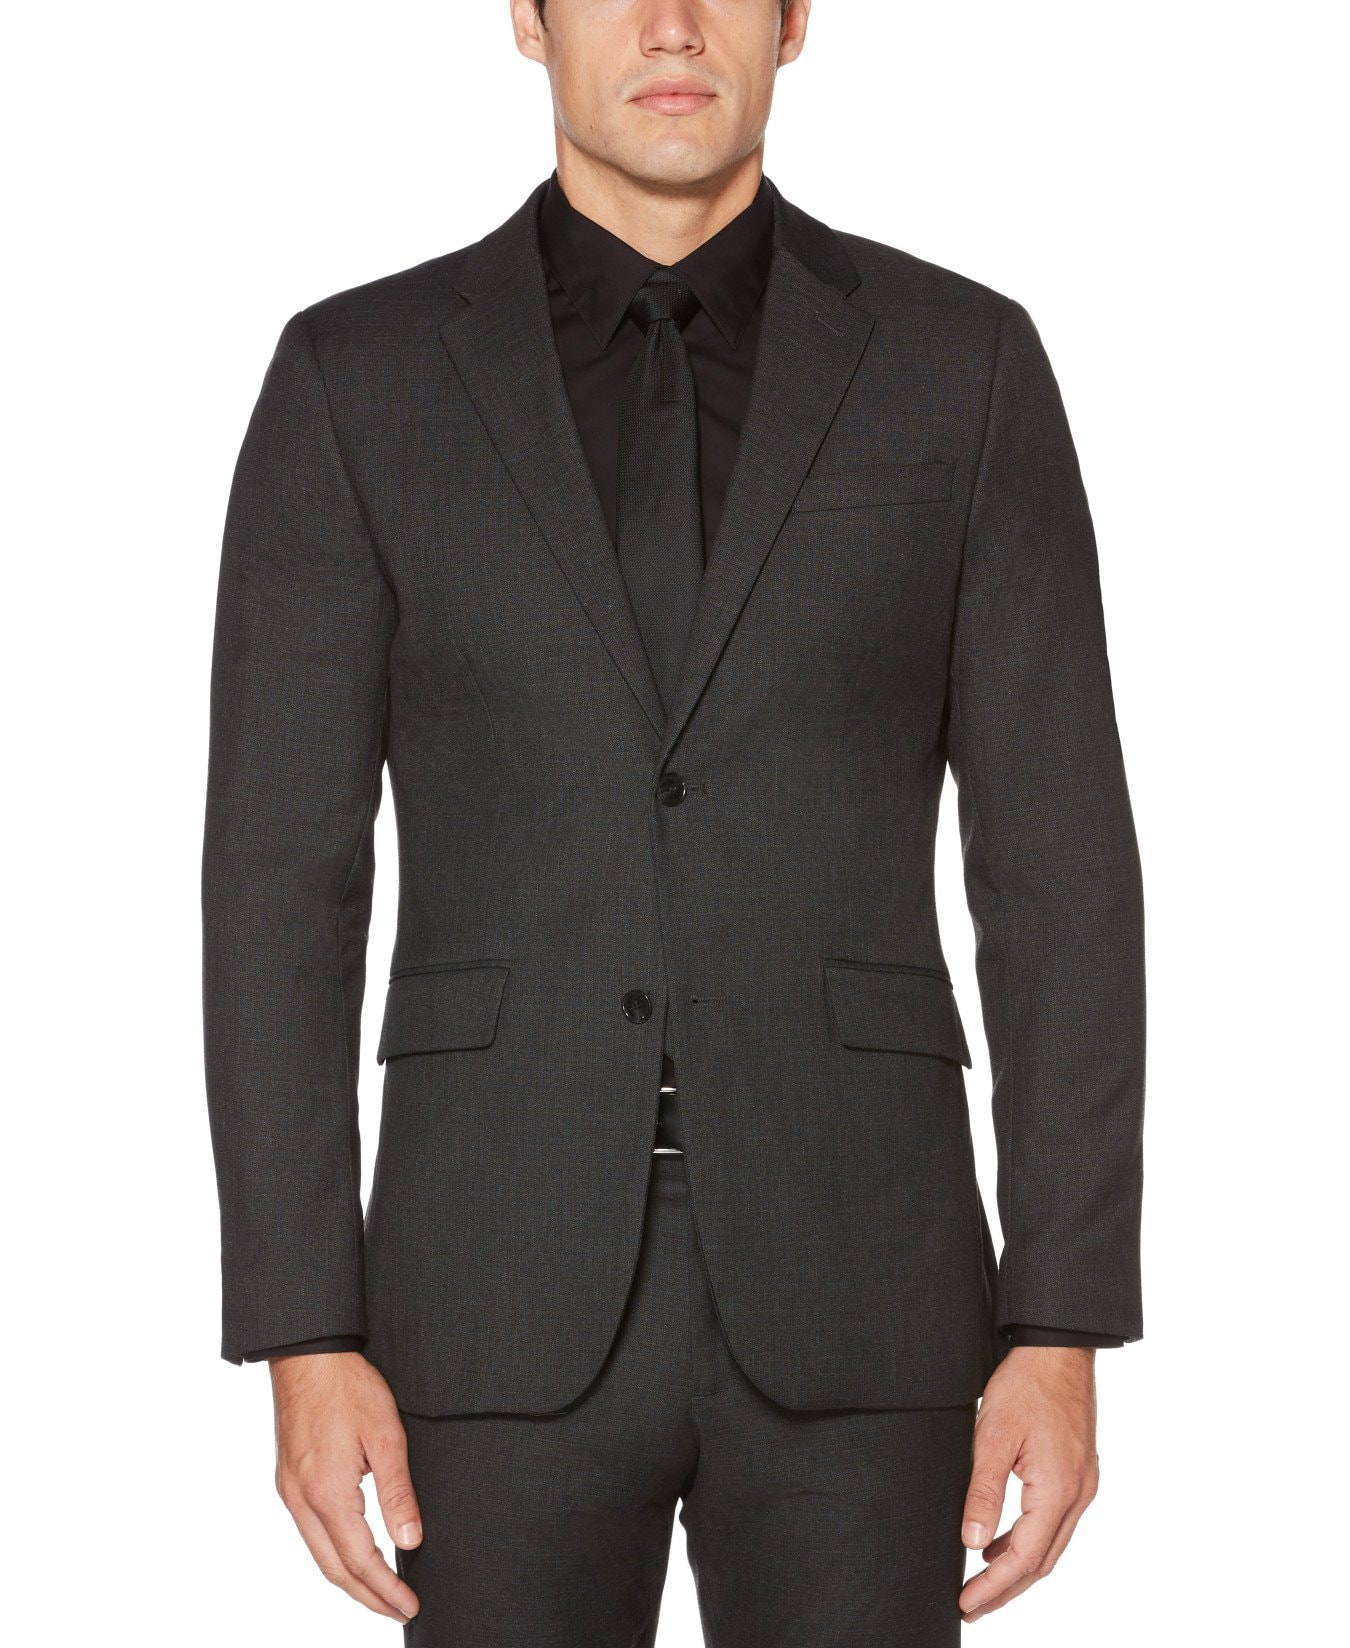 Perry Ellis Very Slim Fit Charcoal Suit Jacket for $17.60 + taxes after coupon code